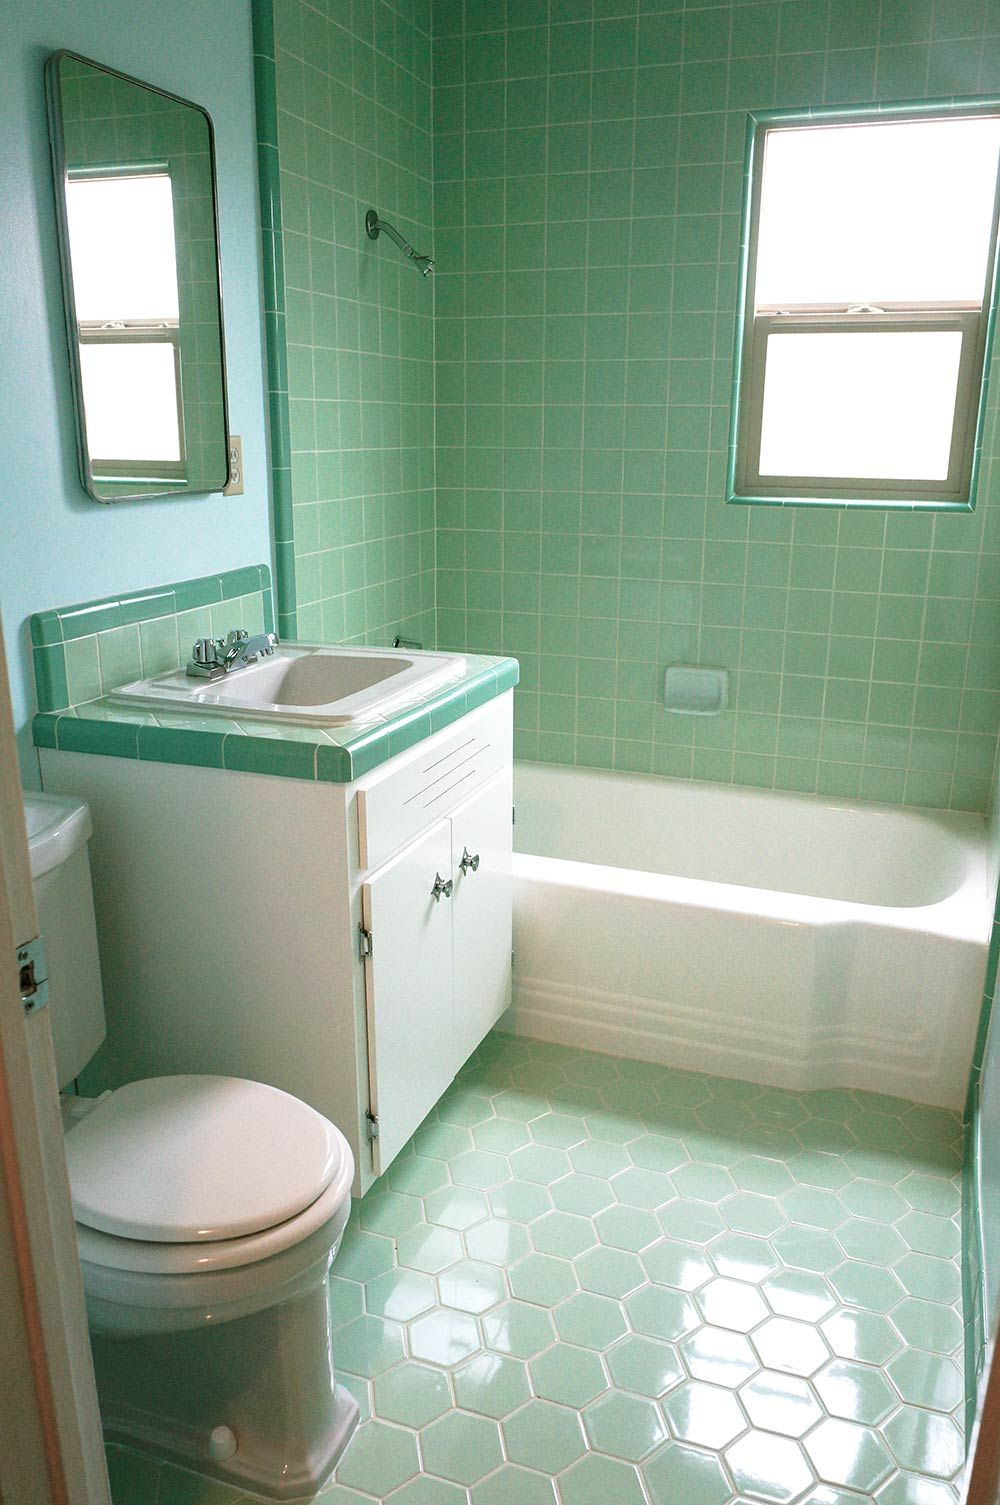 Soft bathroom in the dormitory